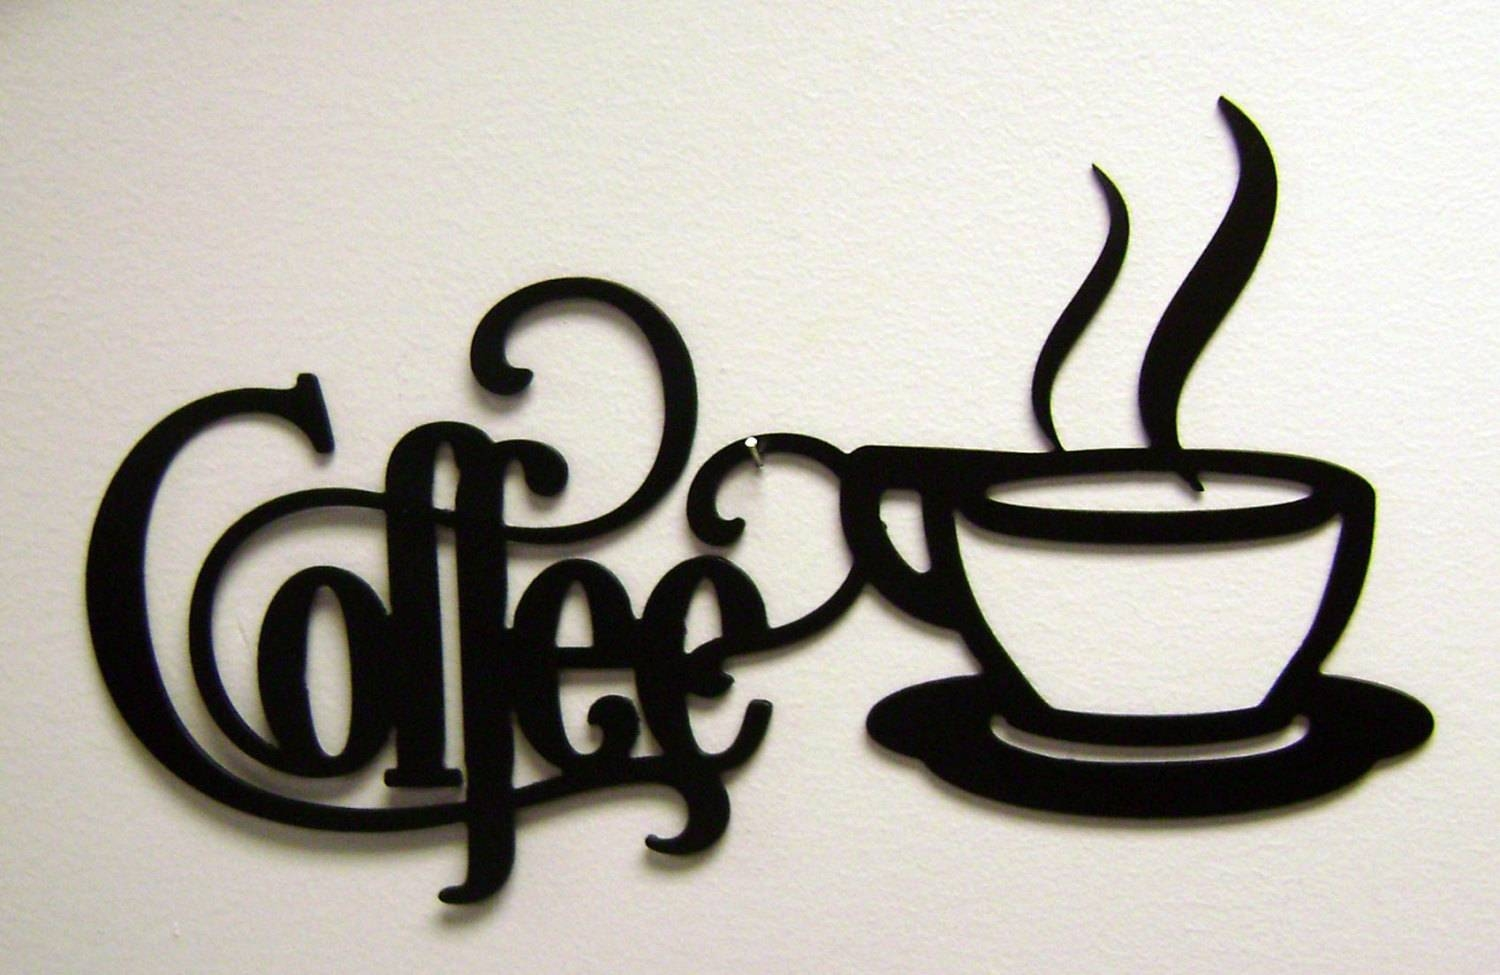 14 X 7 Bistro Coffee Sign With Mug Metal Wall Intended For Recent Coffee Cup Metal Wall Art (View 11 of 20)